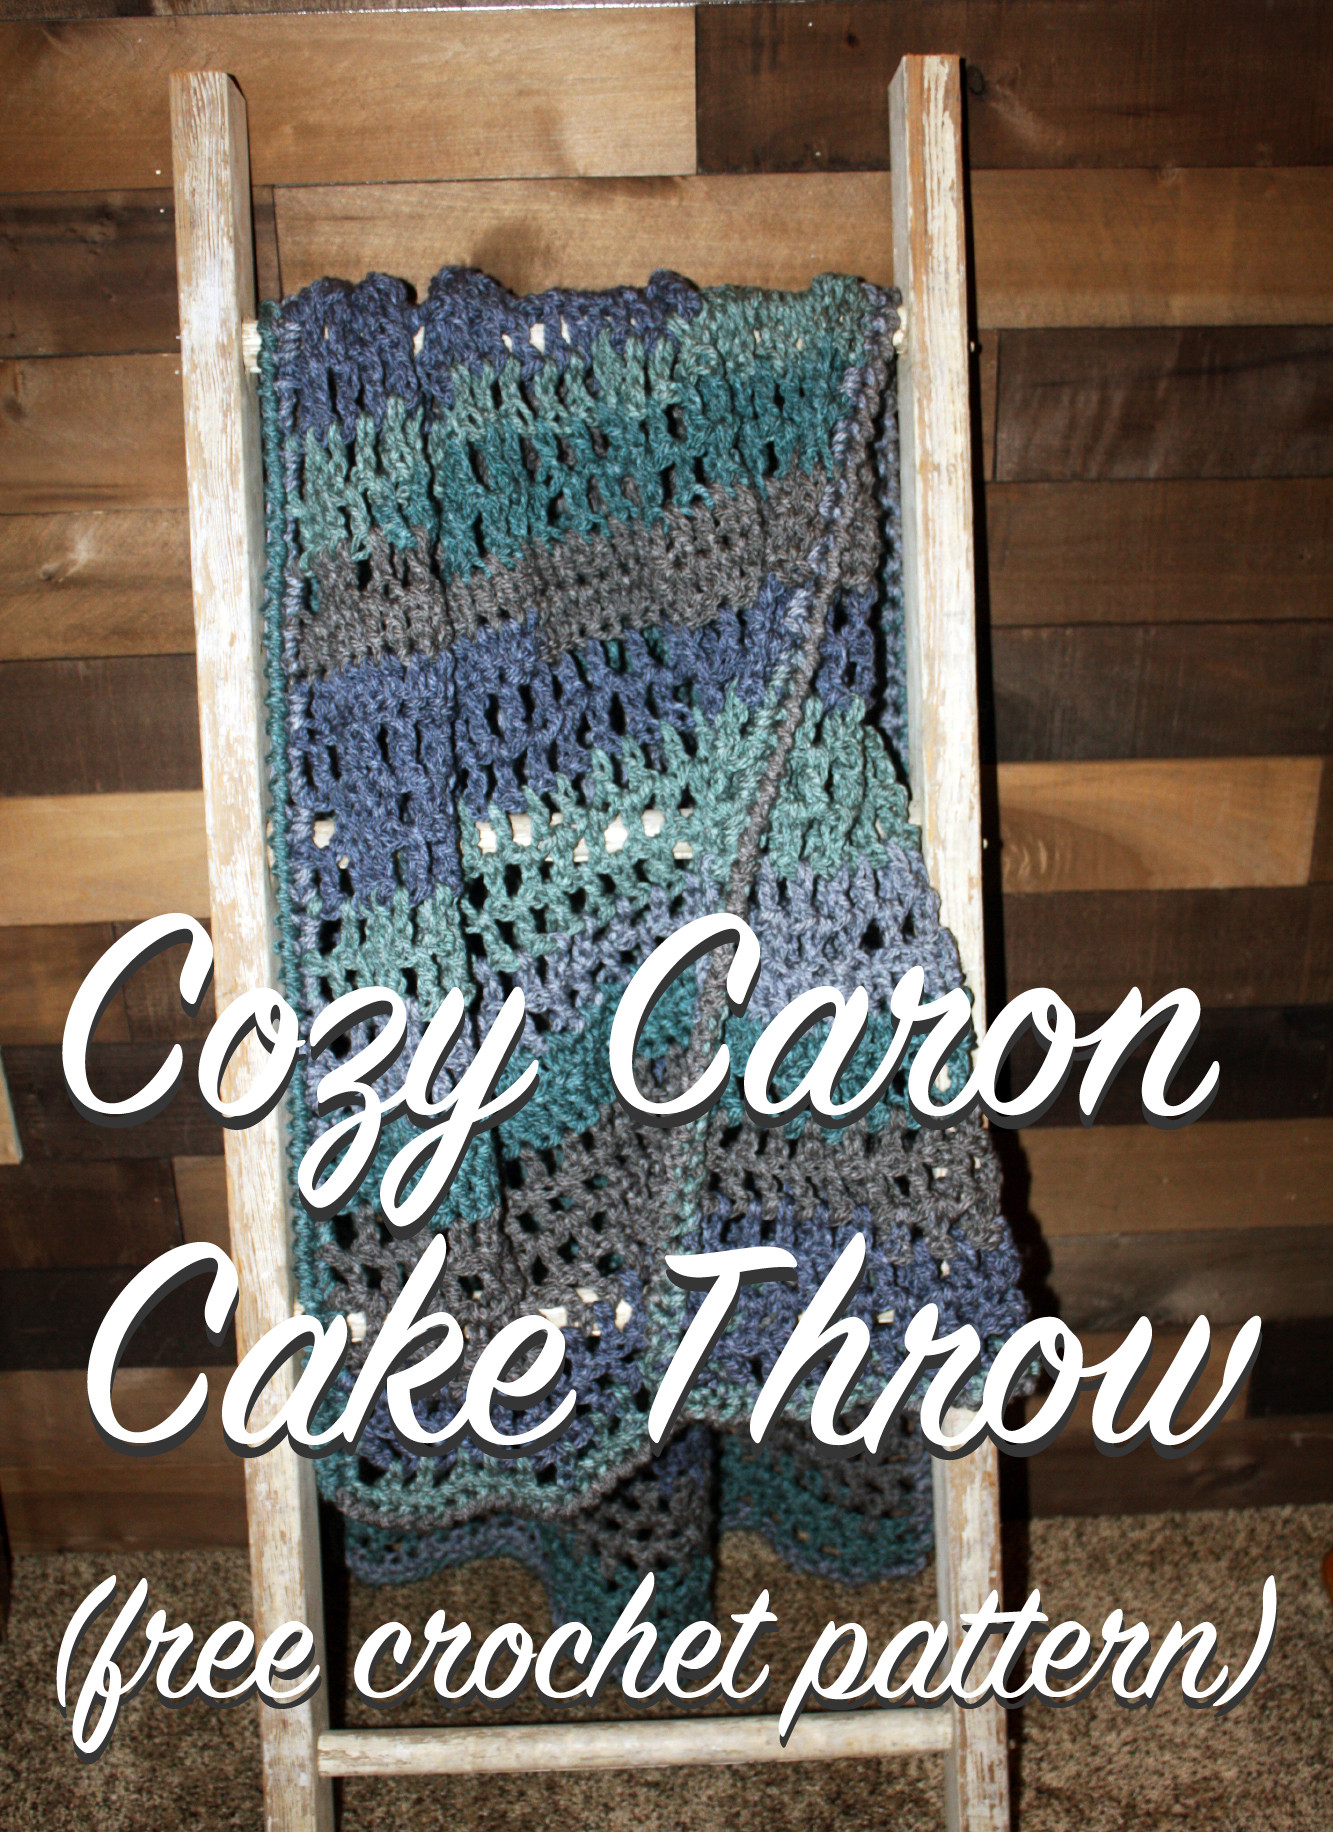 New Cozy Crochet Blanket sofa Throw with Caron Tea Cakes Caron Tea Cakes Patterns Of Incredible 46 Pics Caron Tea Cakes Patterns